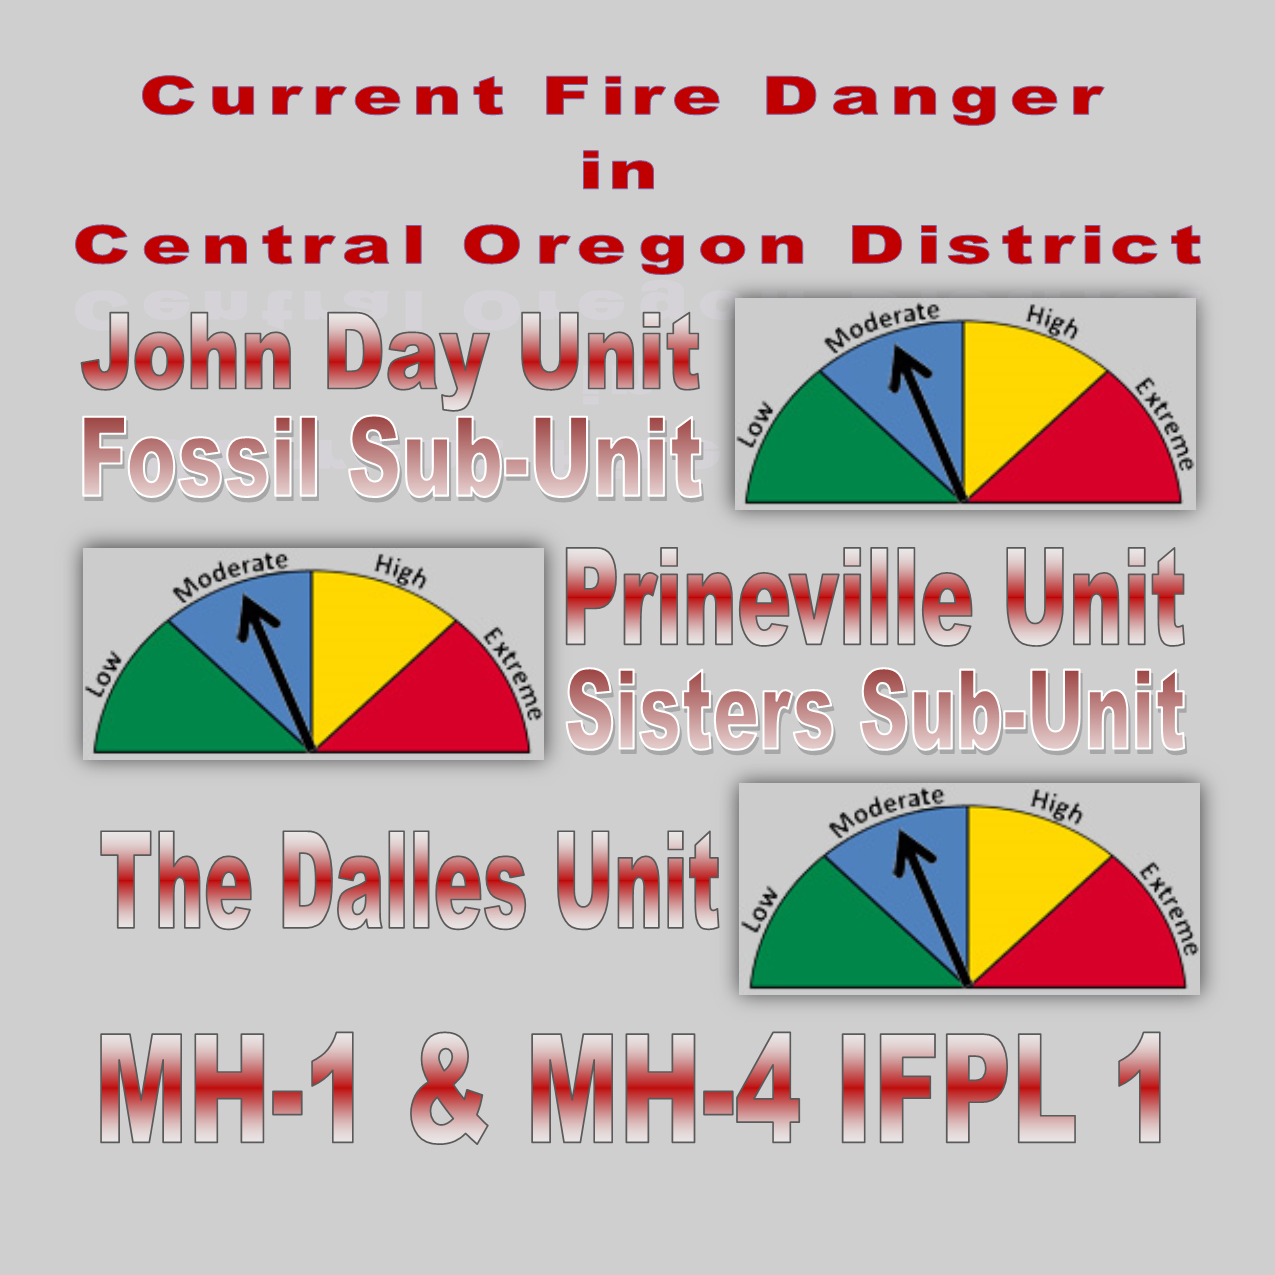 Over The Last Few Weeks Cooler Temperatures And Increased Precipitation Has Reduced Fire Danger Throughout Lands Protected By Oregon Department Of